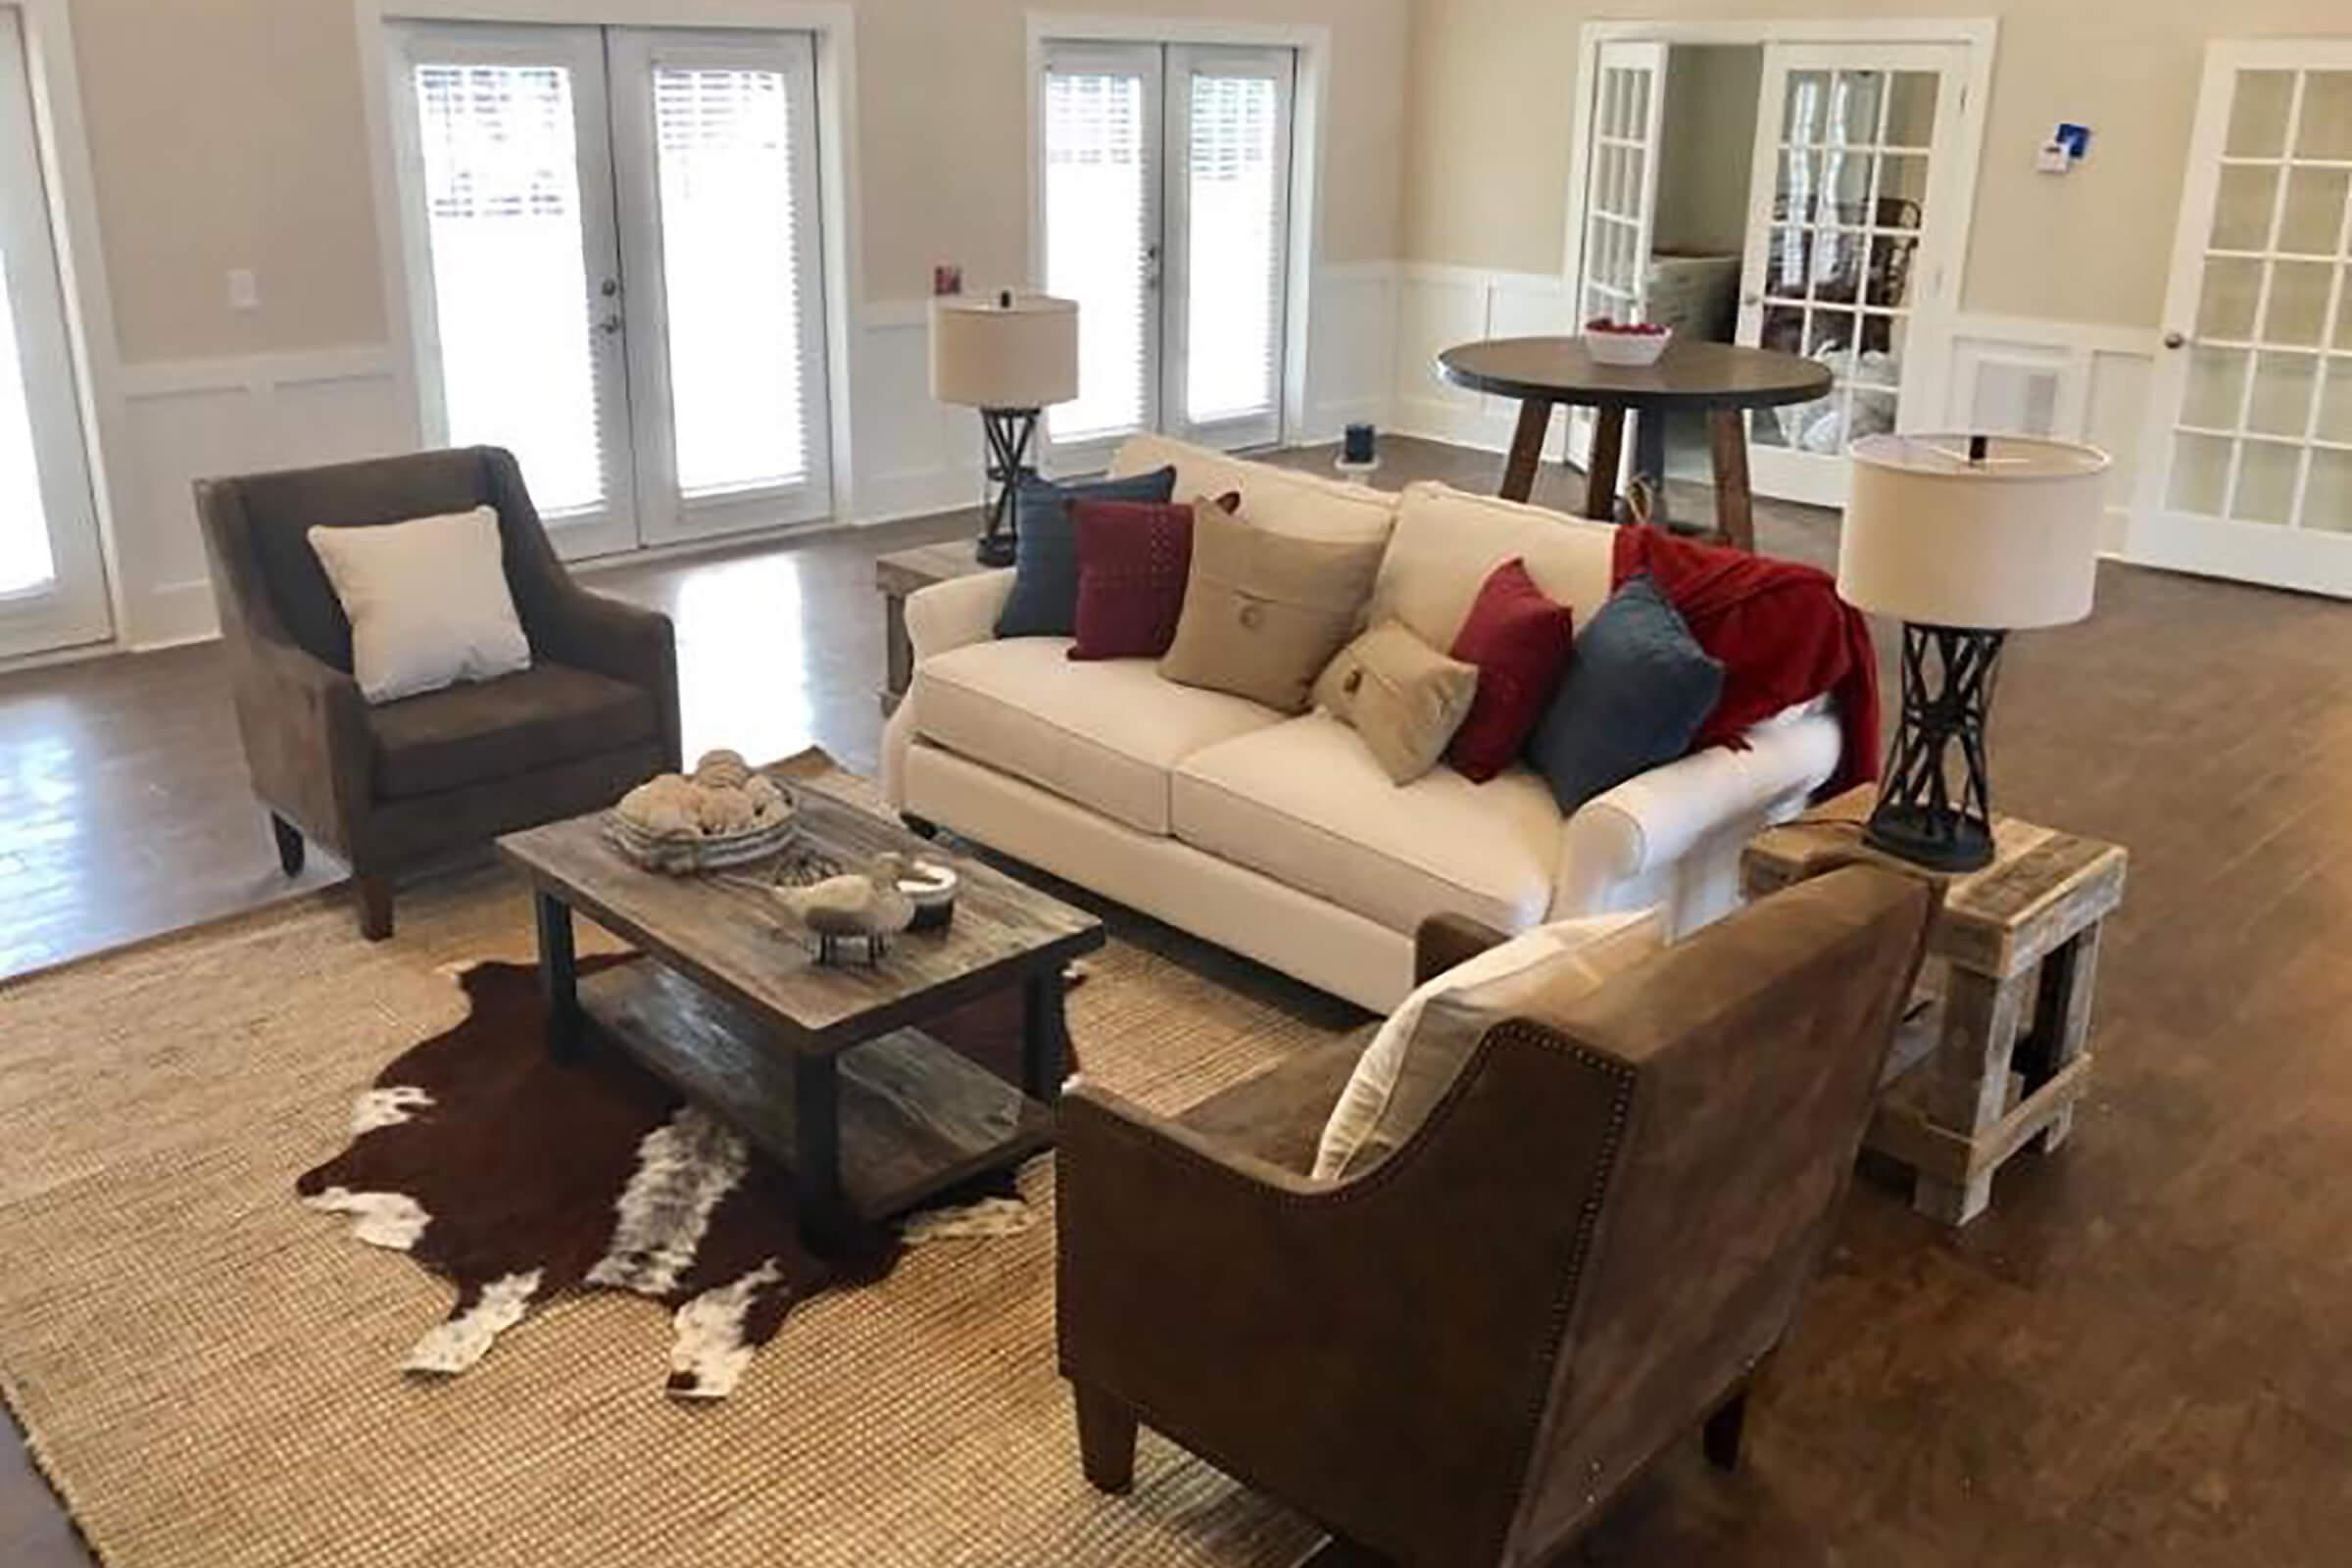 a living room filled with furniture and a window